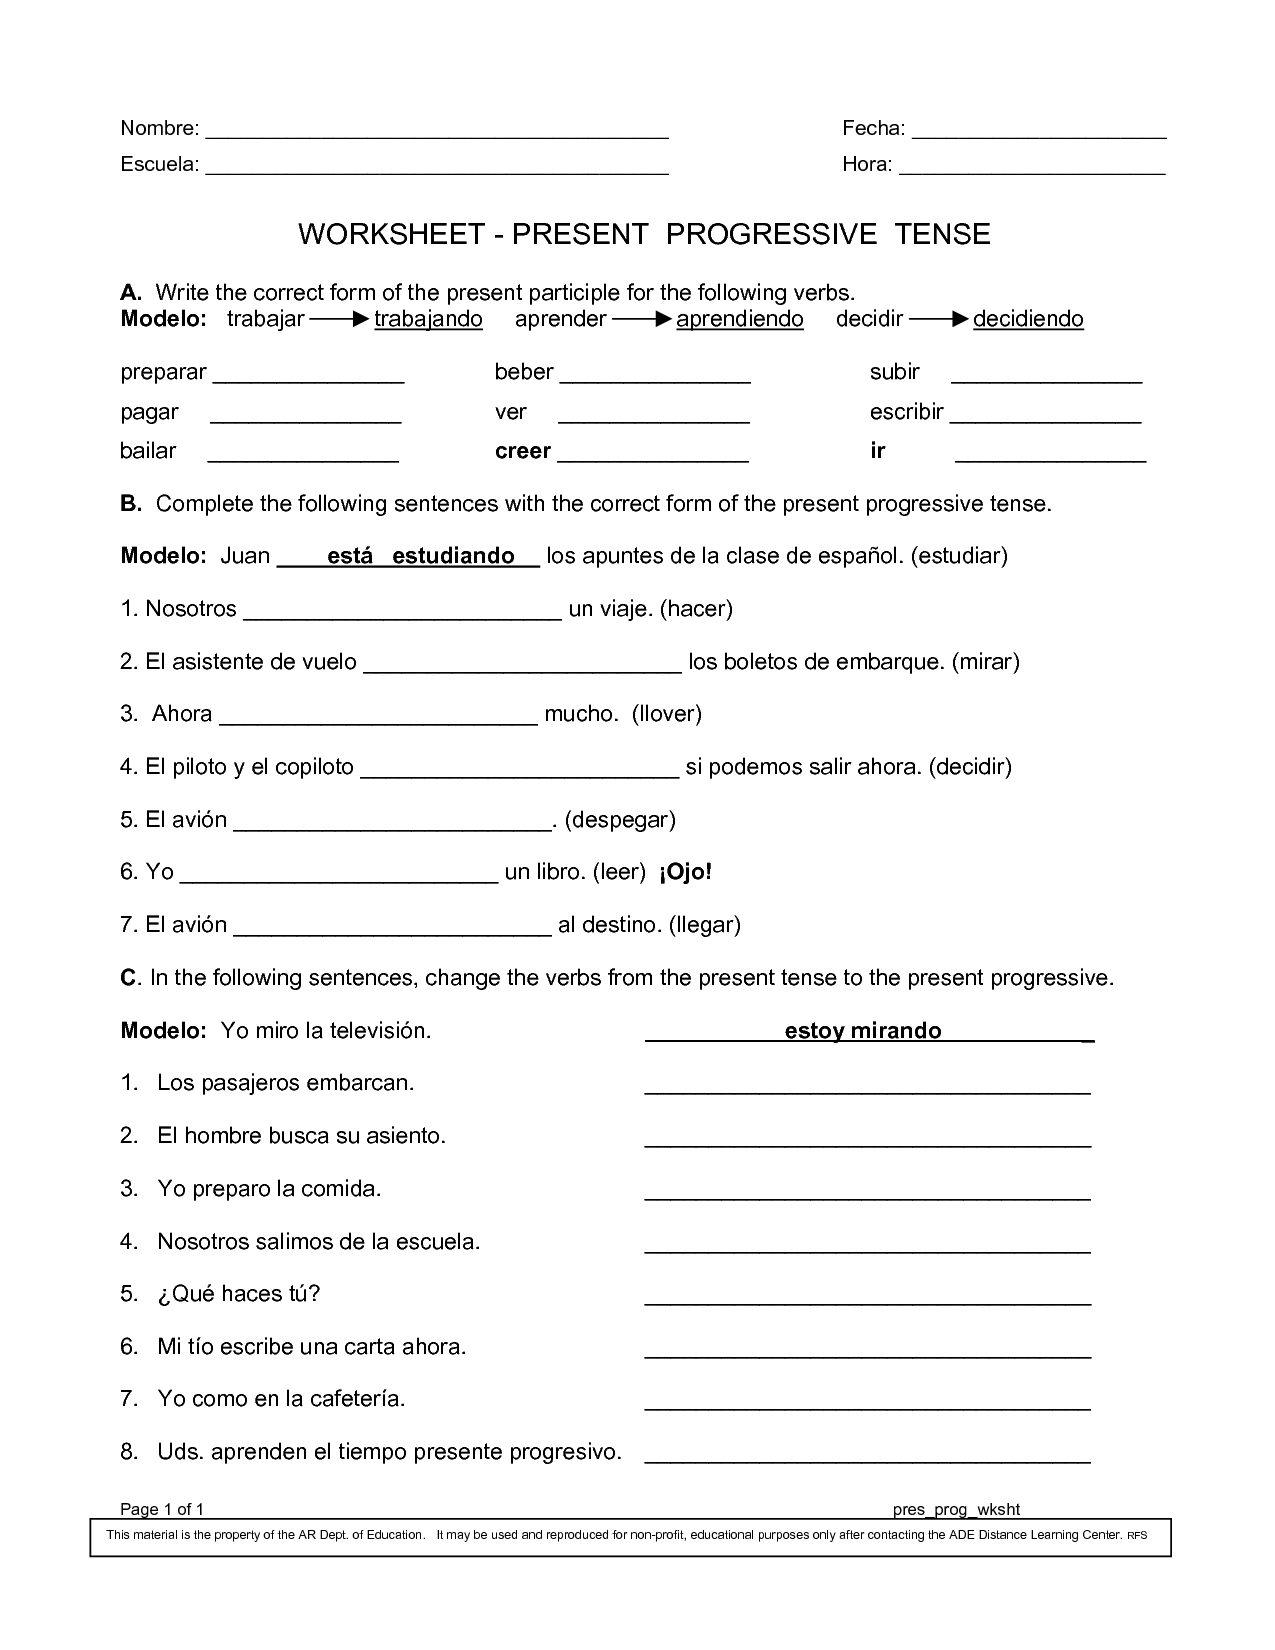 Worksheets Middle School Spanish Worksheets spanish worksheets printables present progressive worksheet worksheet